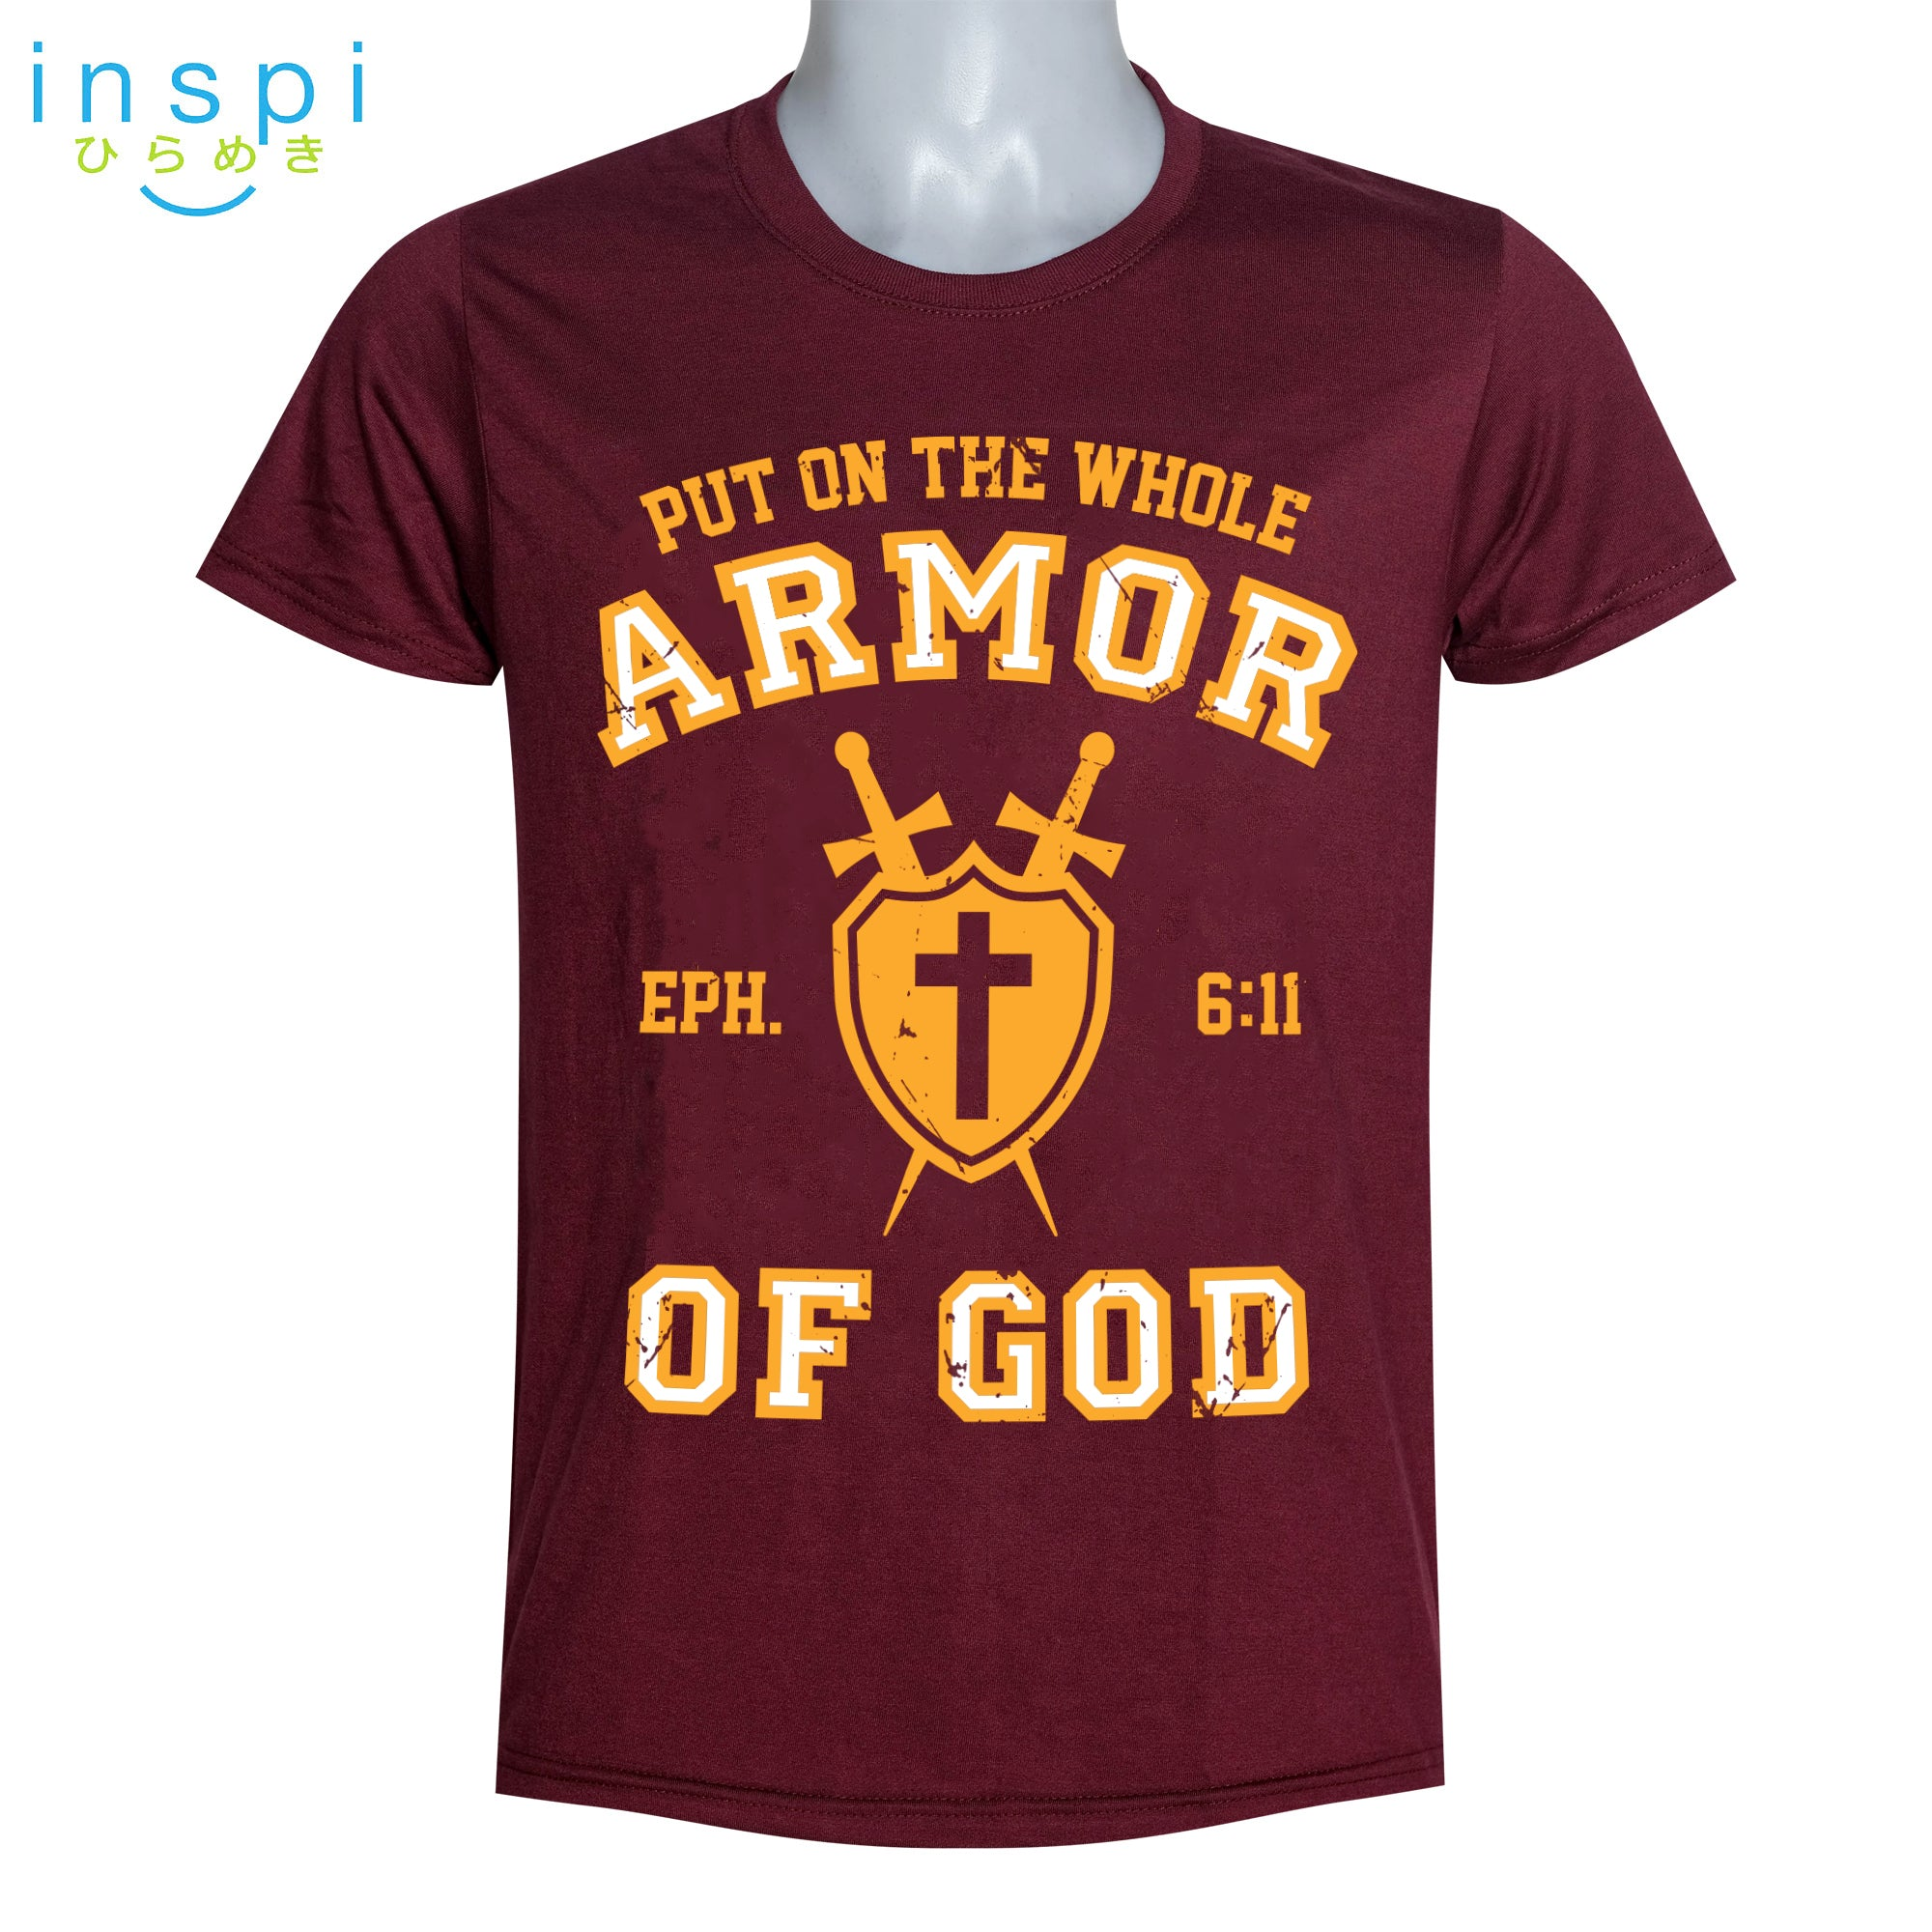 INSPI Shirt Armor of God Graphic Shirt in Maroon